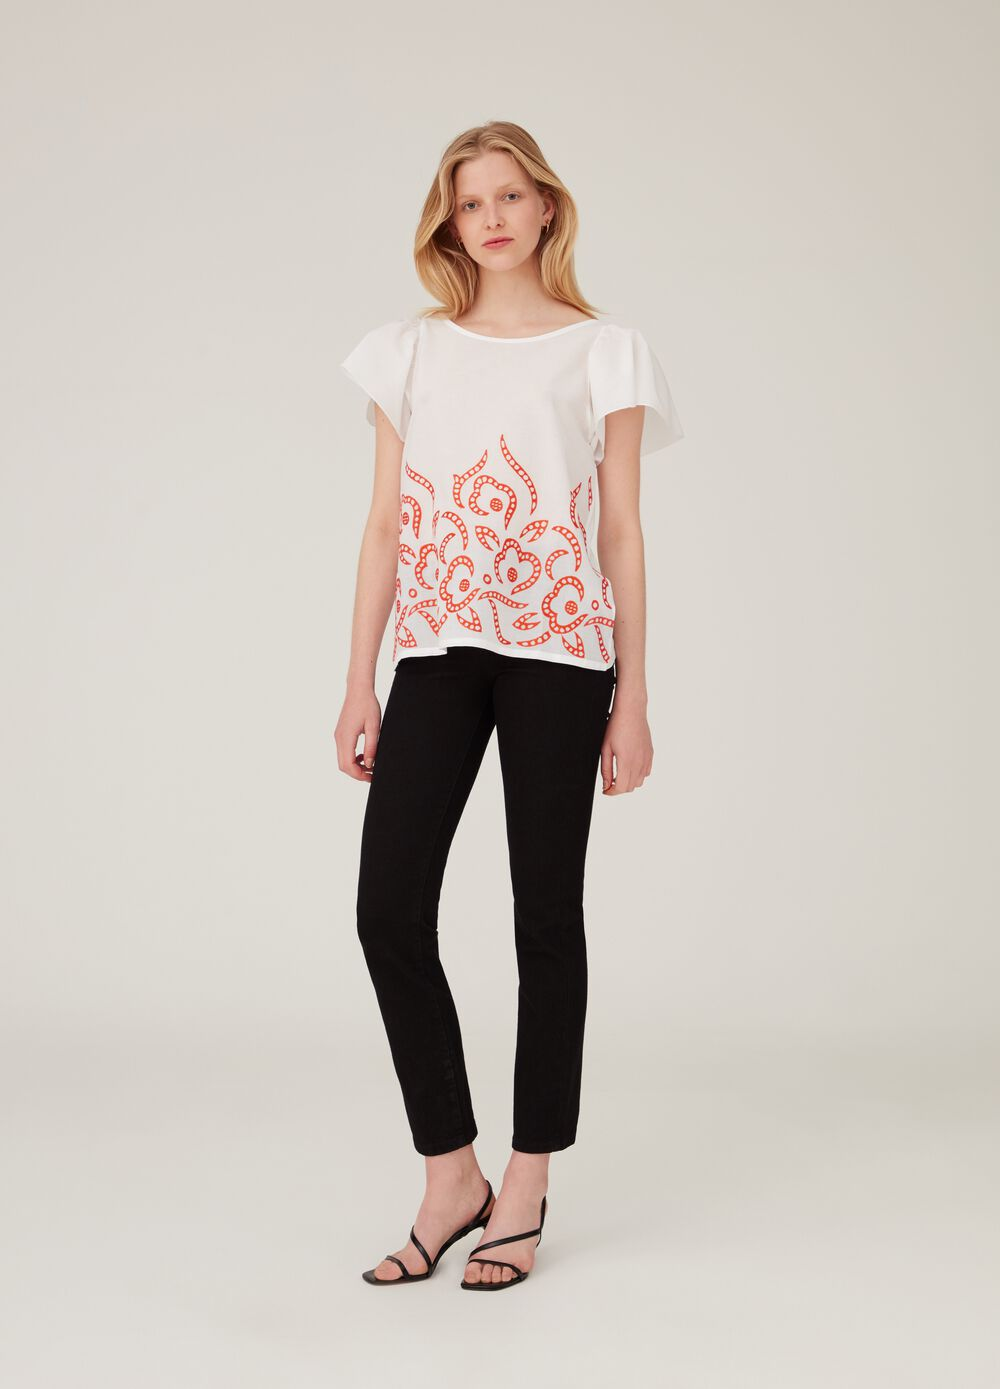 100% cotton T-shirt with patterned hem